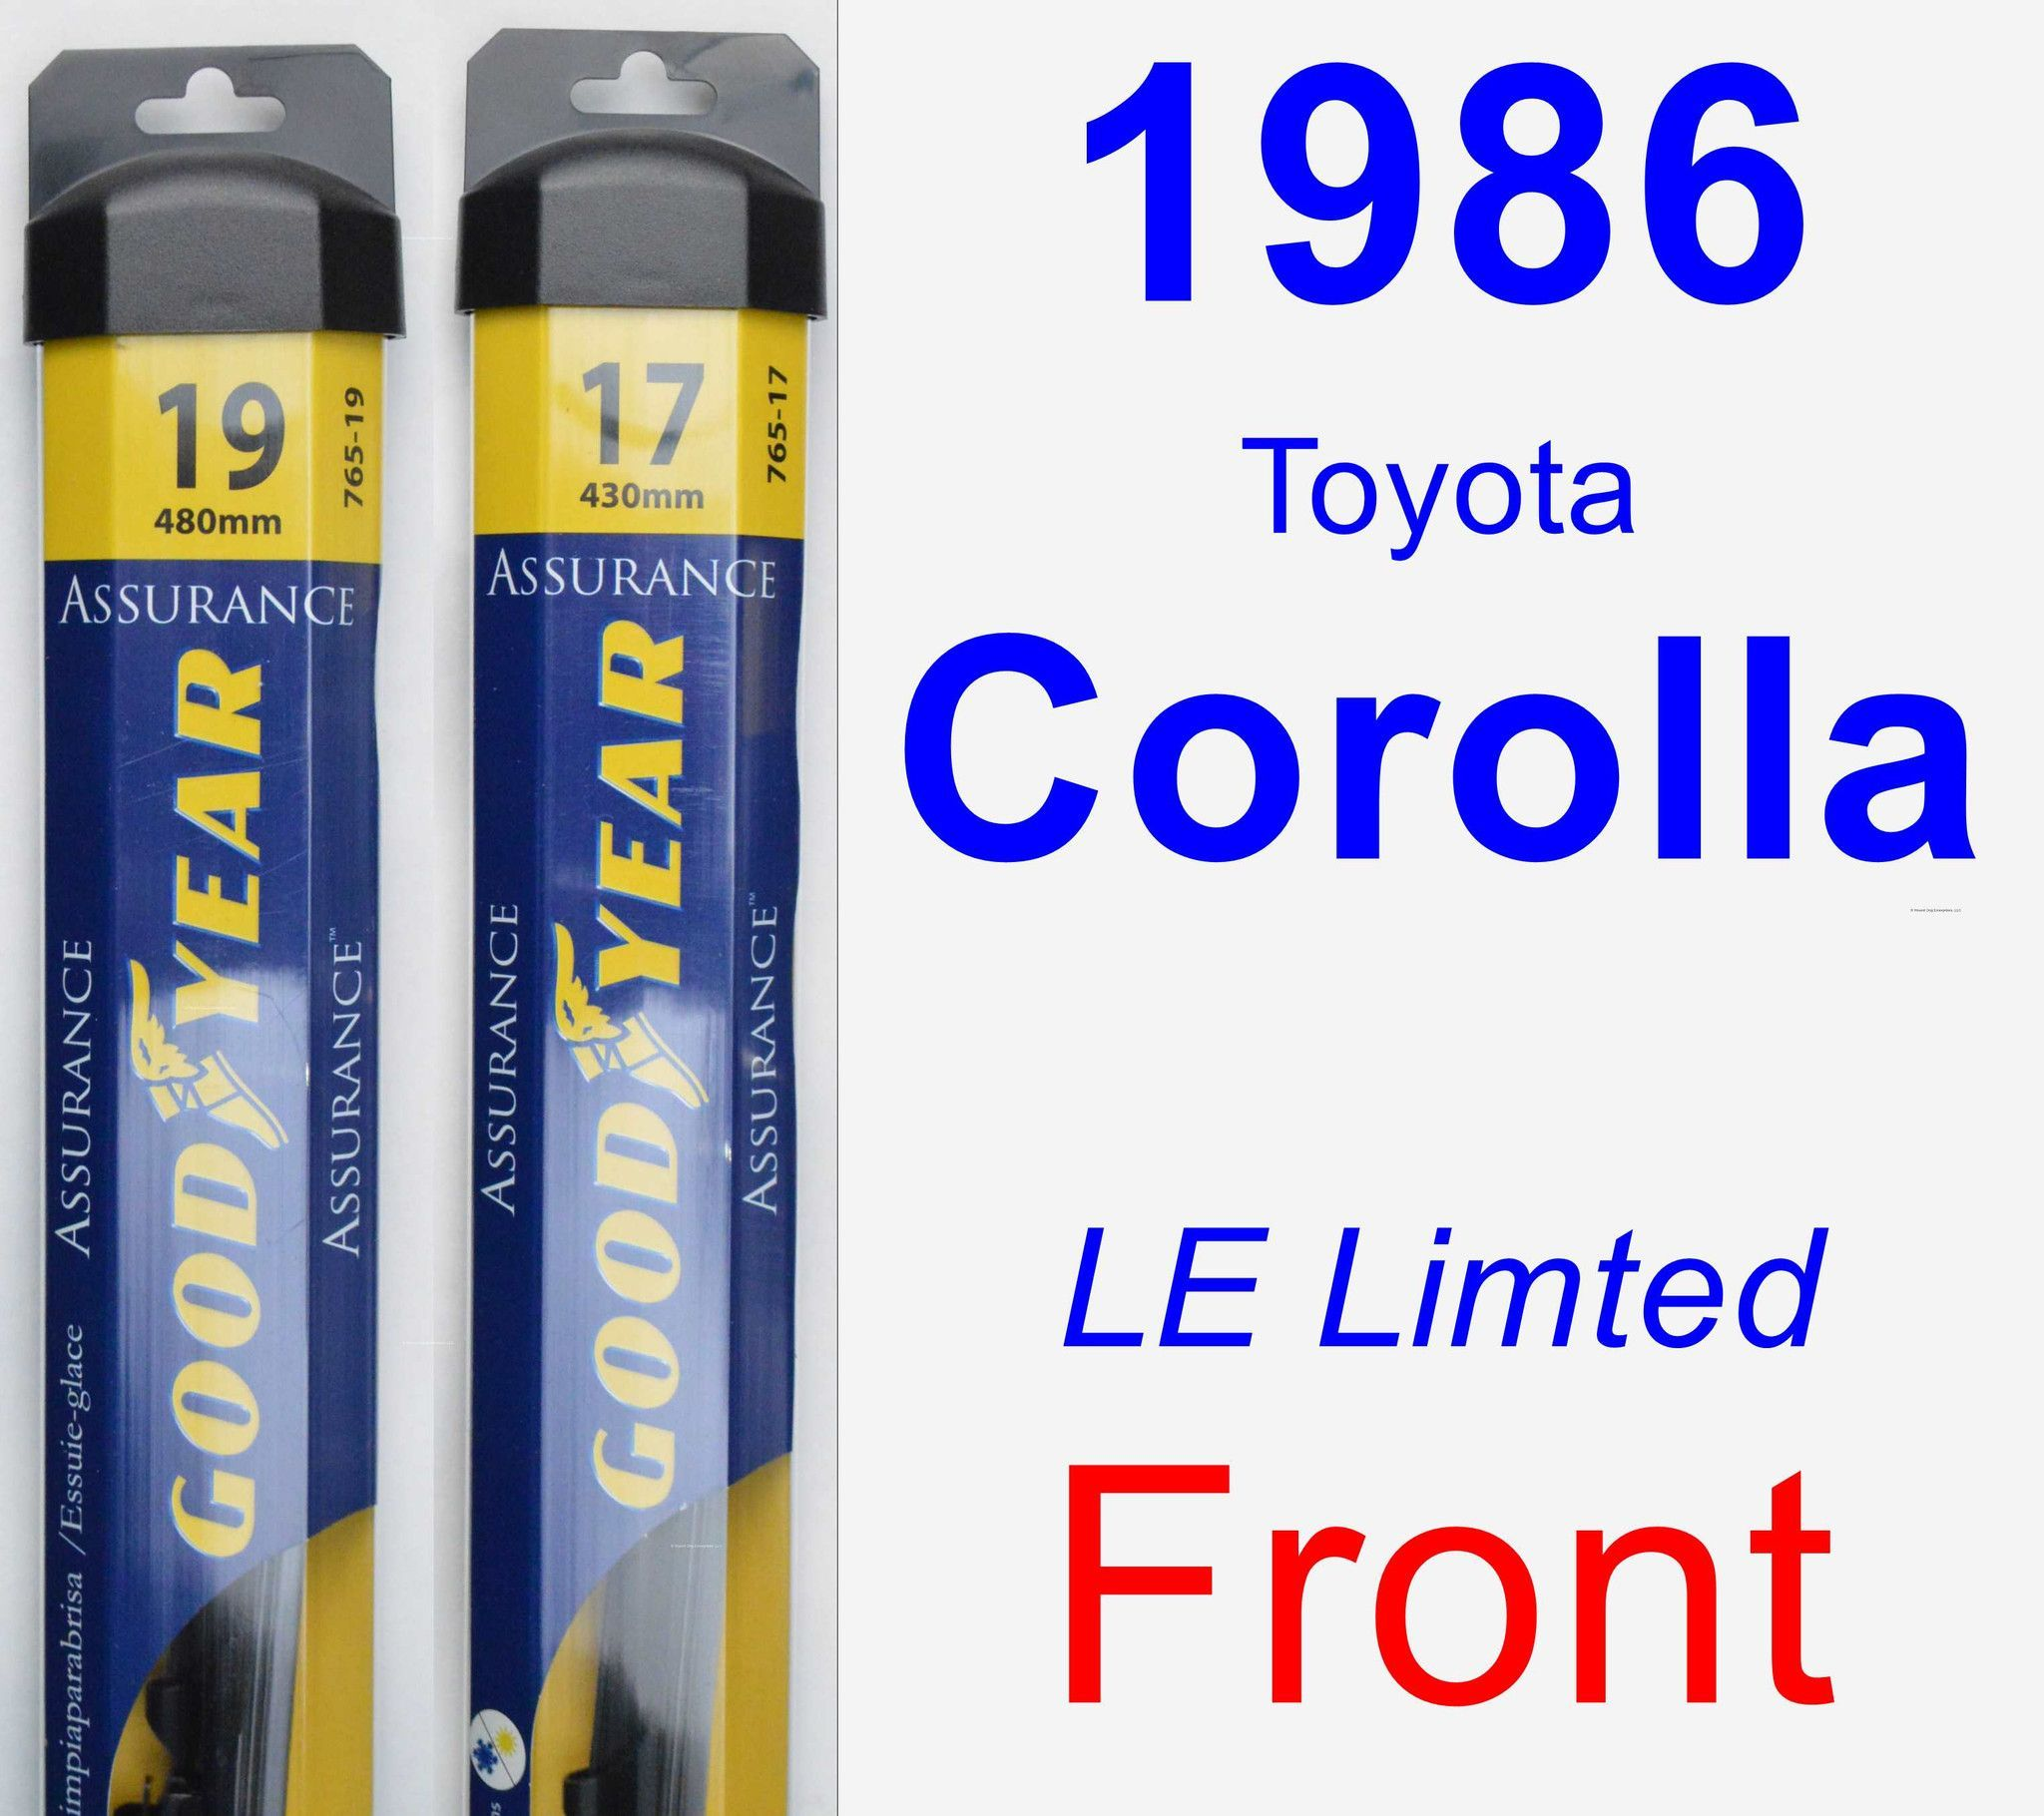 Front Wiper Blade Pack for 1986 Toyota Corolla - Assurance